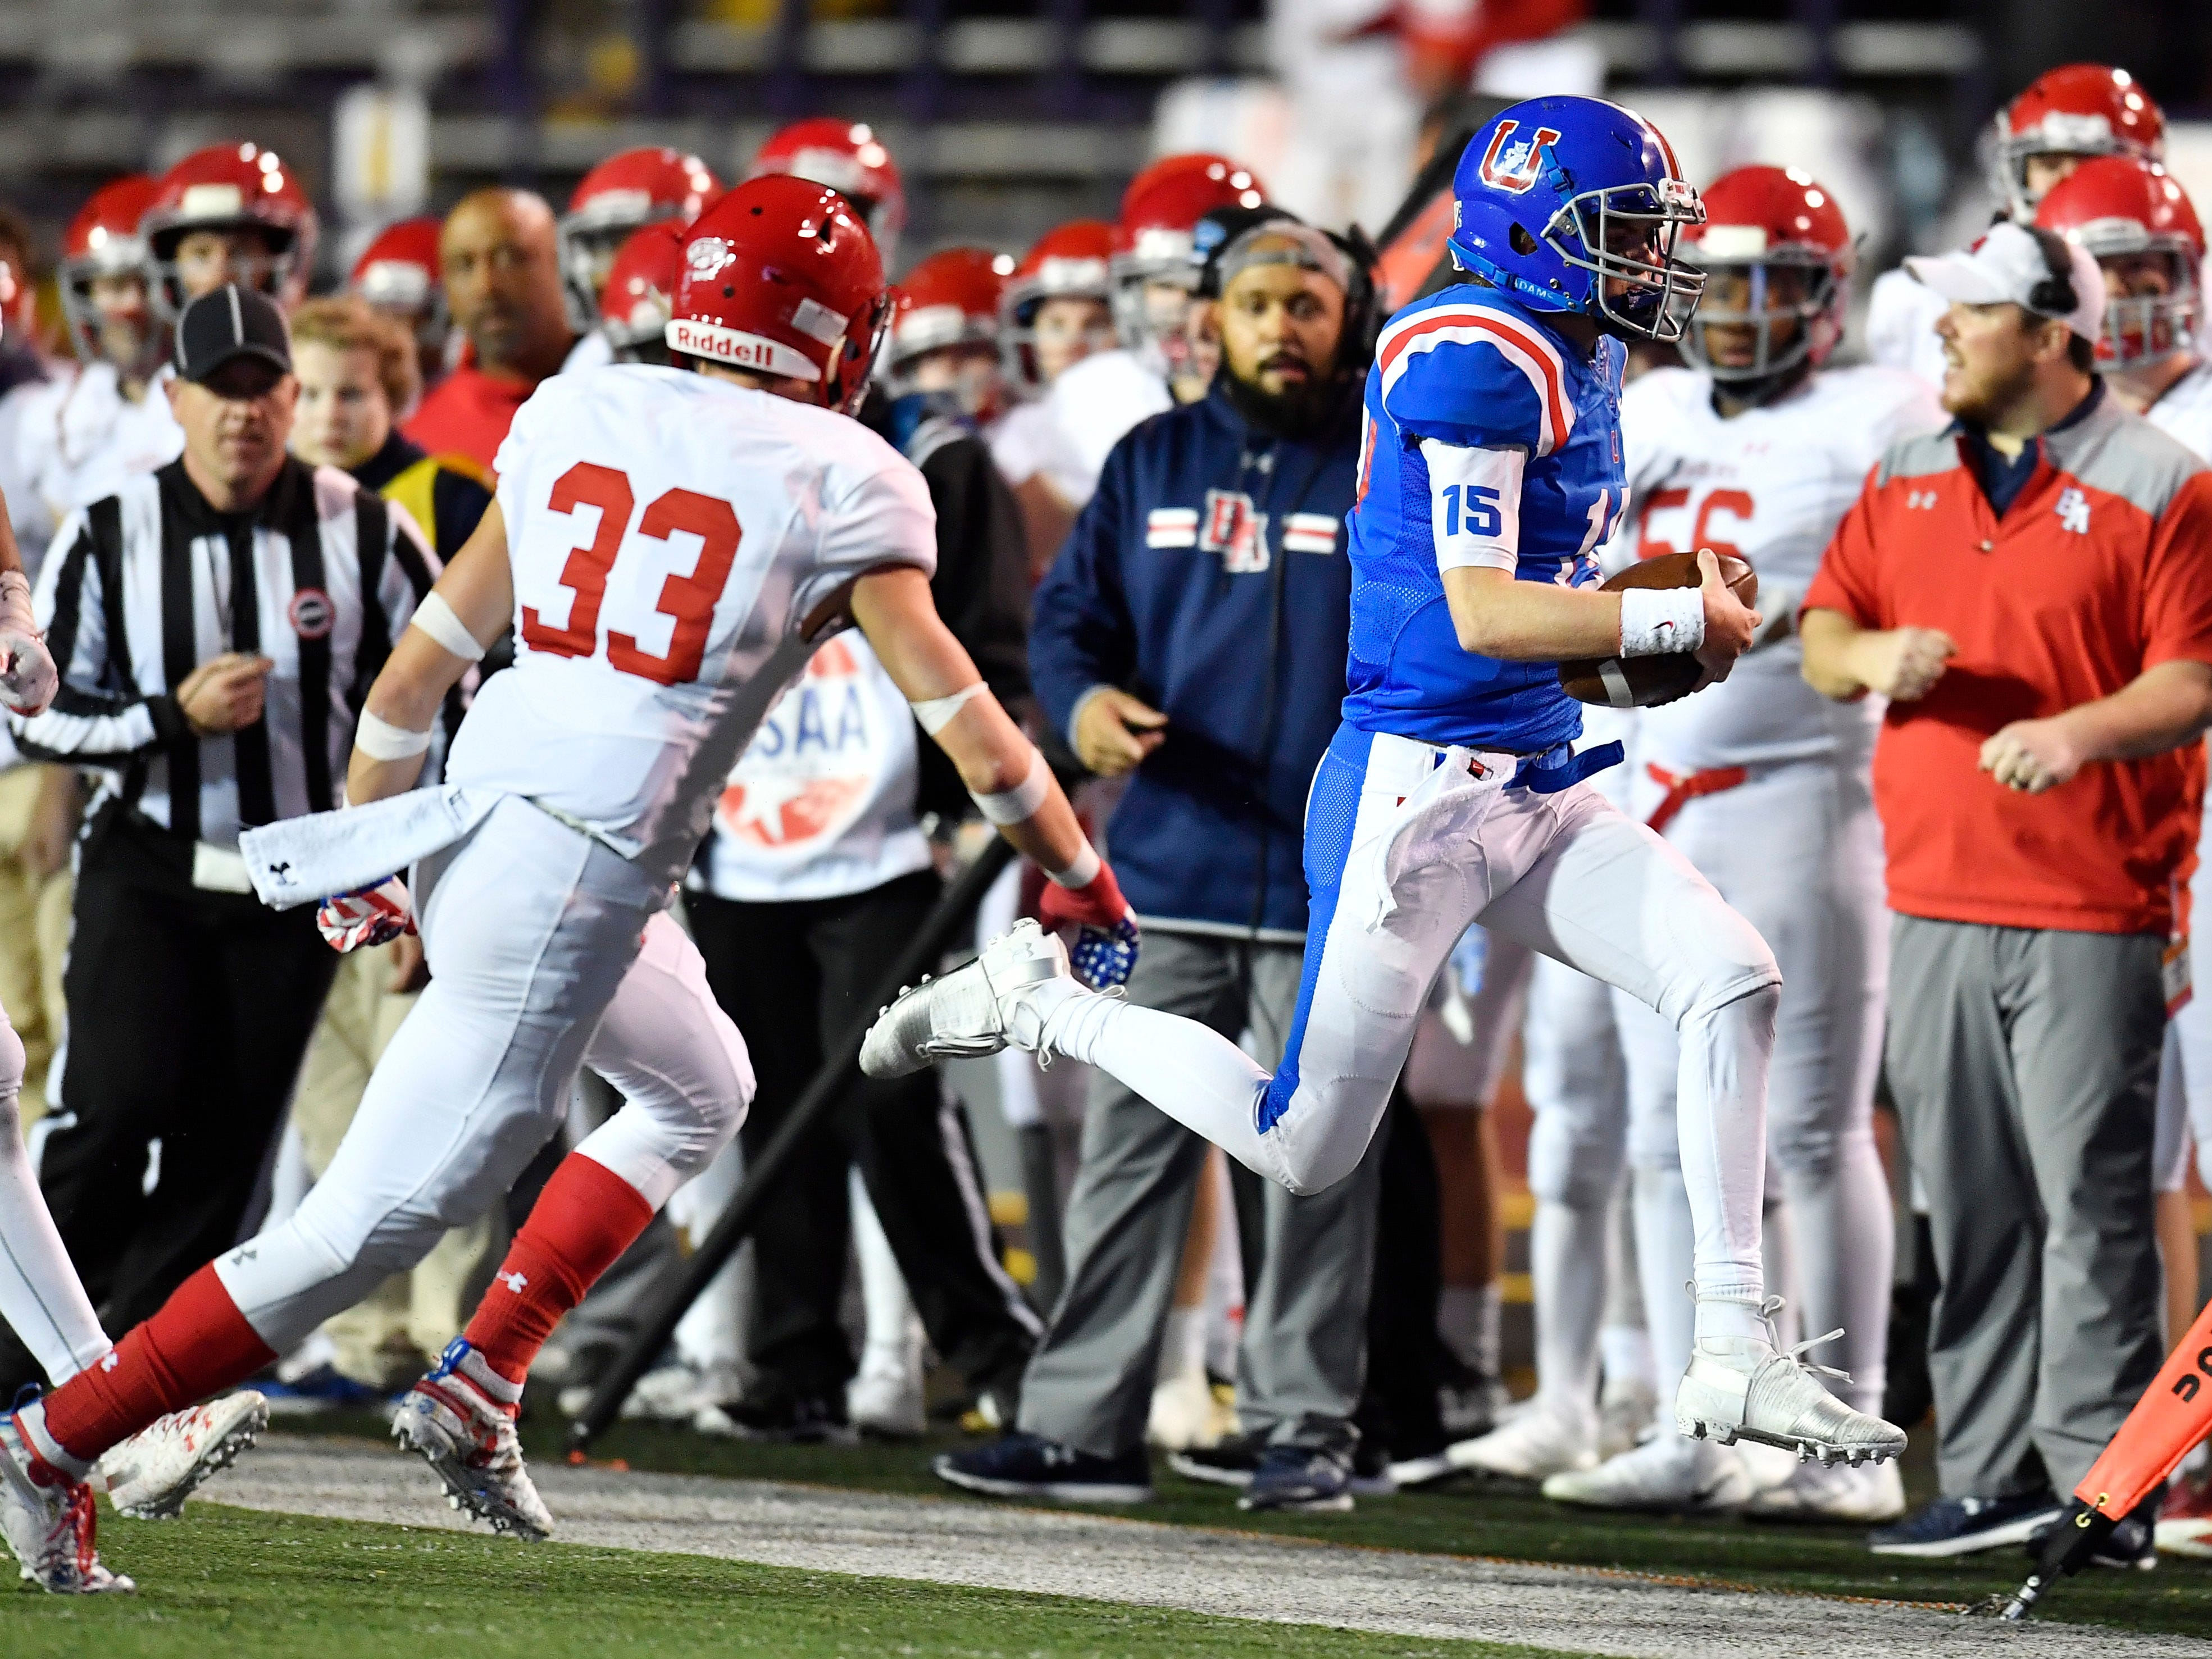 Memphis Univ. School quarterback Sellers Shy (15) scrambles out of bounds for a first down defended by Brentwood Academy defensive back Aaron Lovins (33) in the e first quarter at the Division II-AAA BlueCross Bowl state championship at Tennessee Tech's Tucker Stadium in Cookeville, Tenn., on Friday, Nov. 30, 2018.